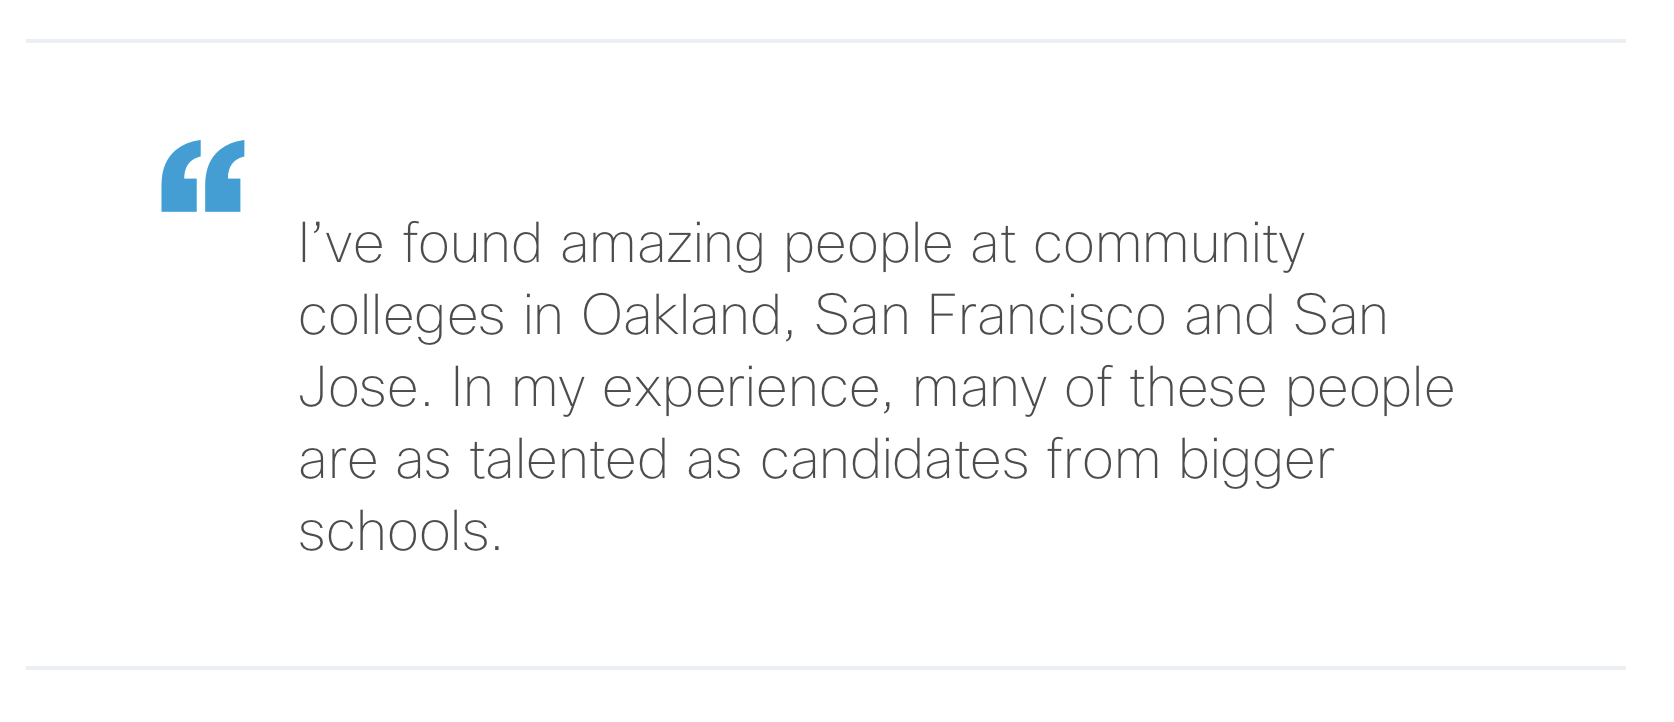 """""""I've found amazing people at community colleges in Oakland, San Francisco and San Jose. In my experience, many of these people are as talented as candidates from bigger schools."""""""